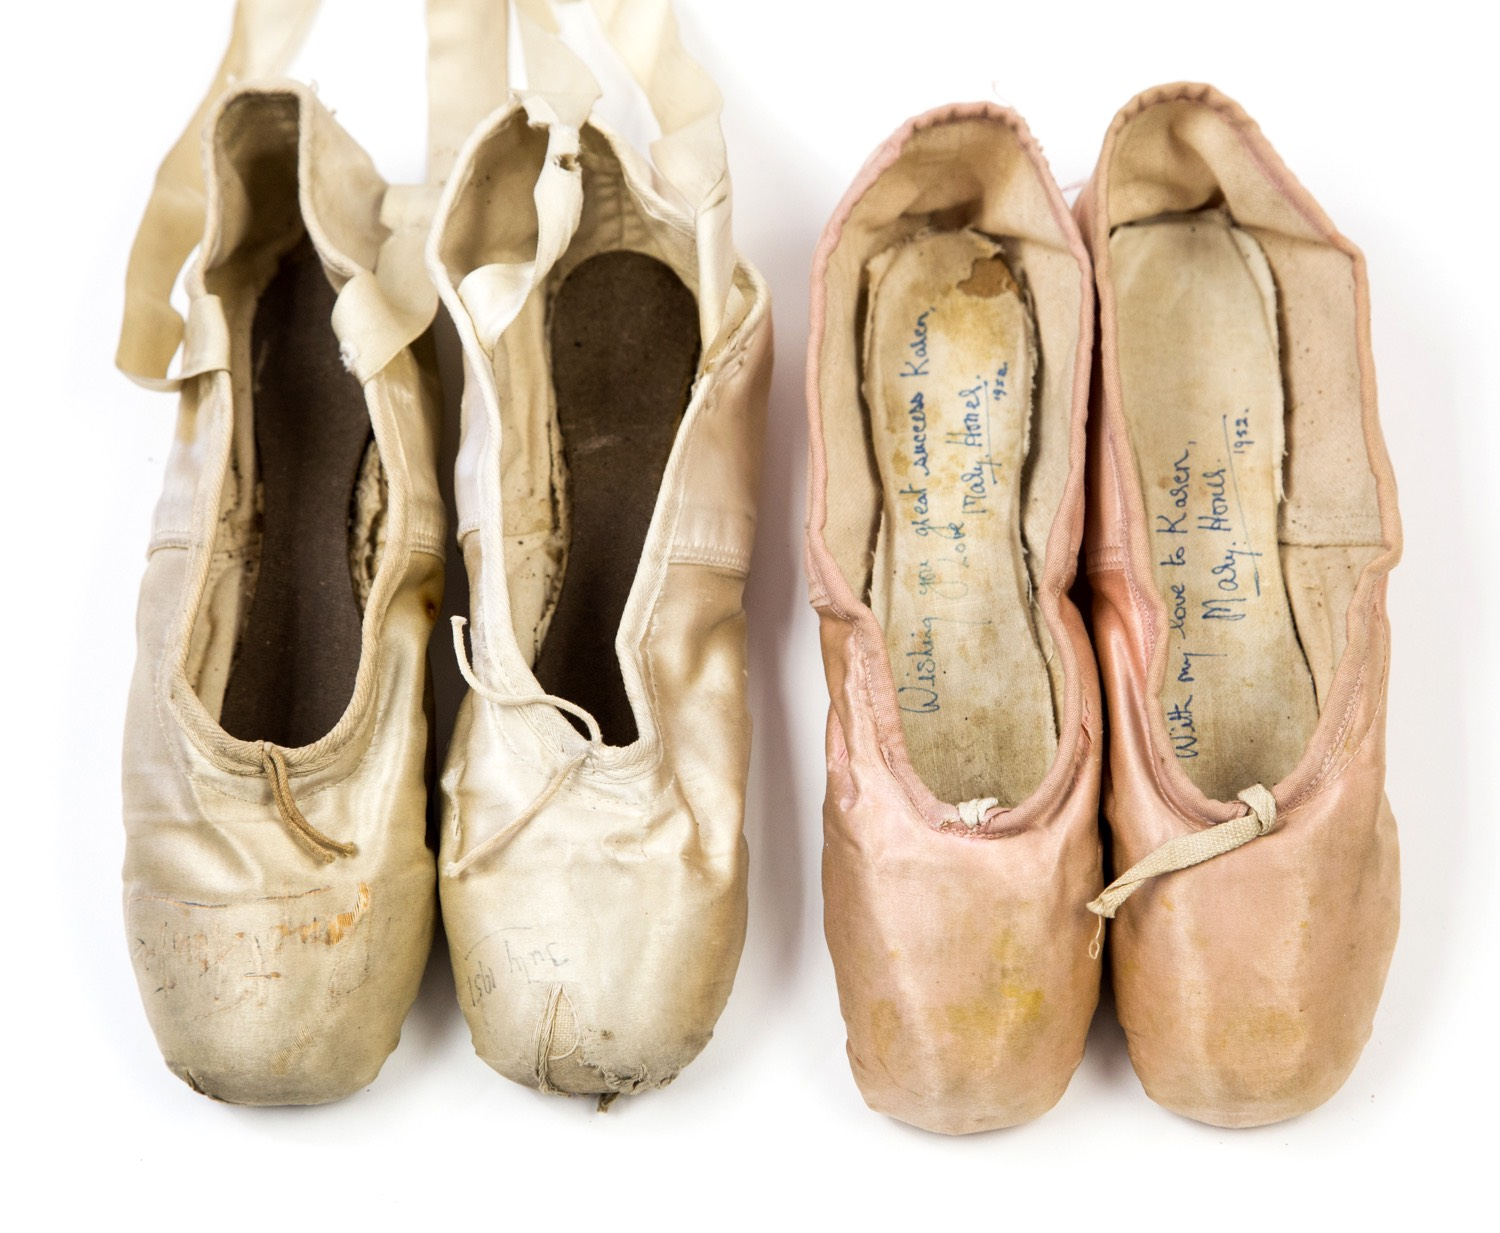 Margot Fonteyn's pointe shoes (on the left)